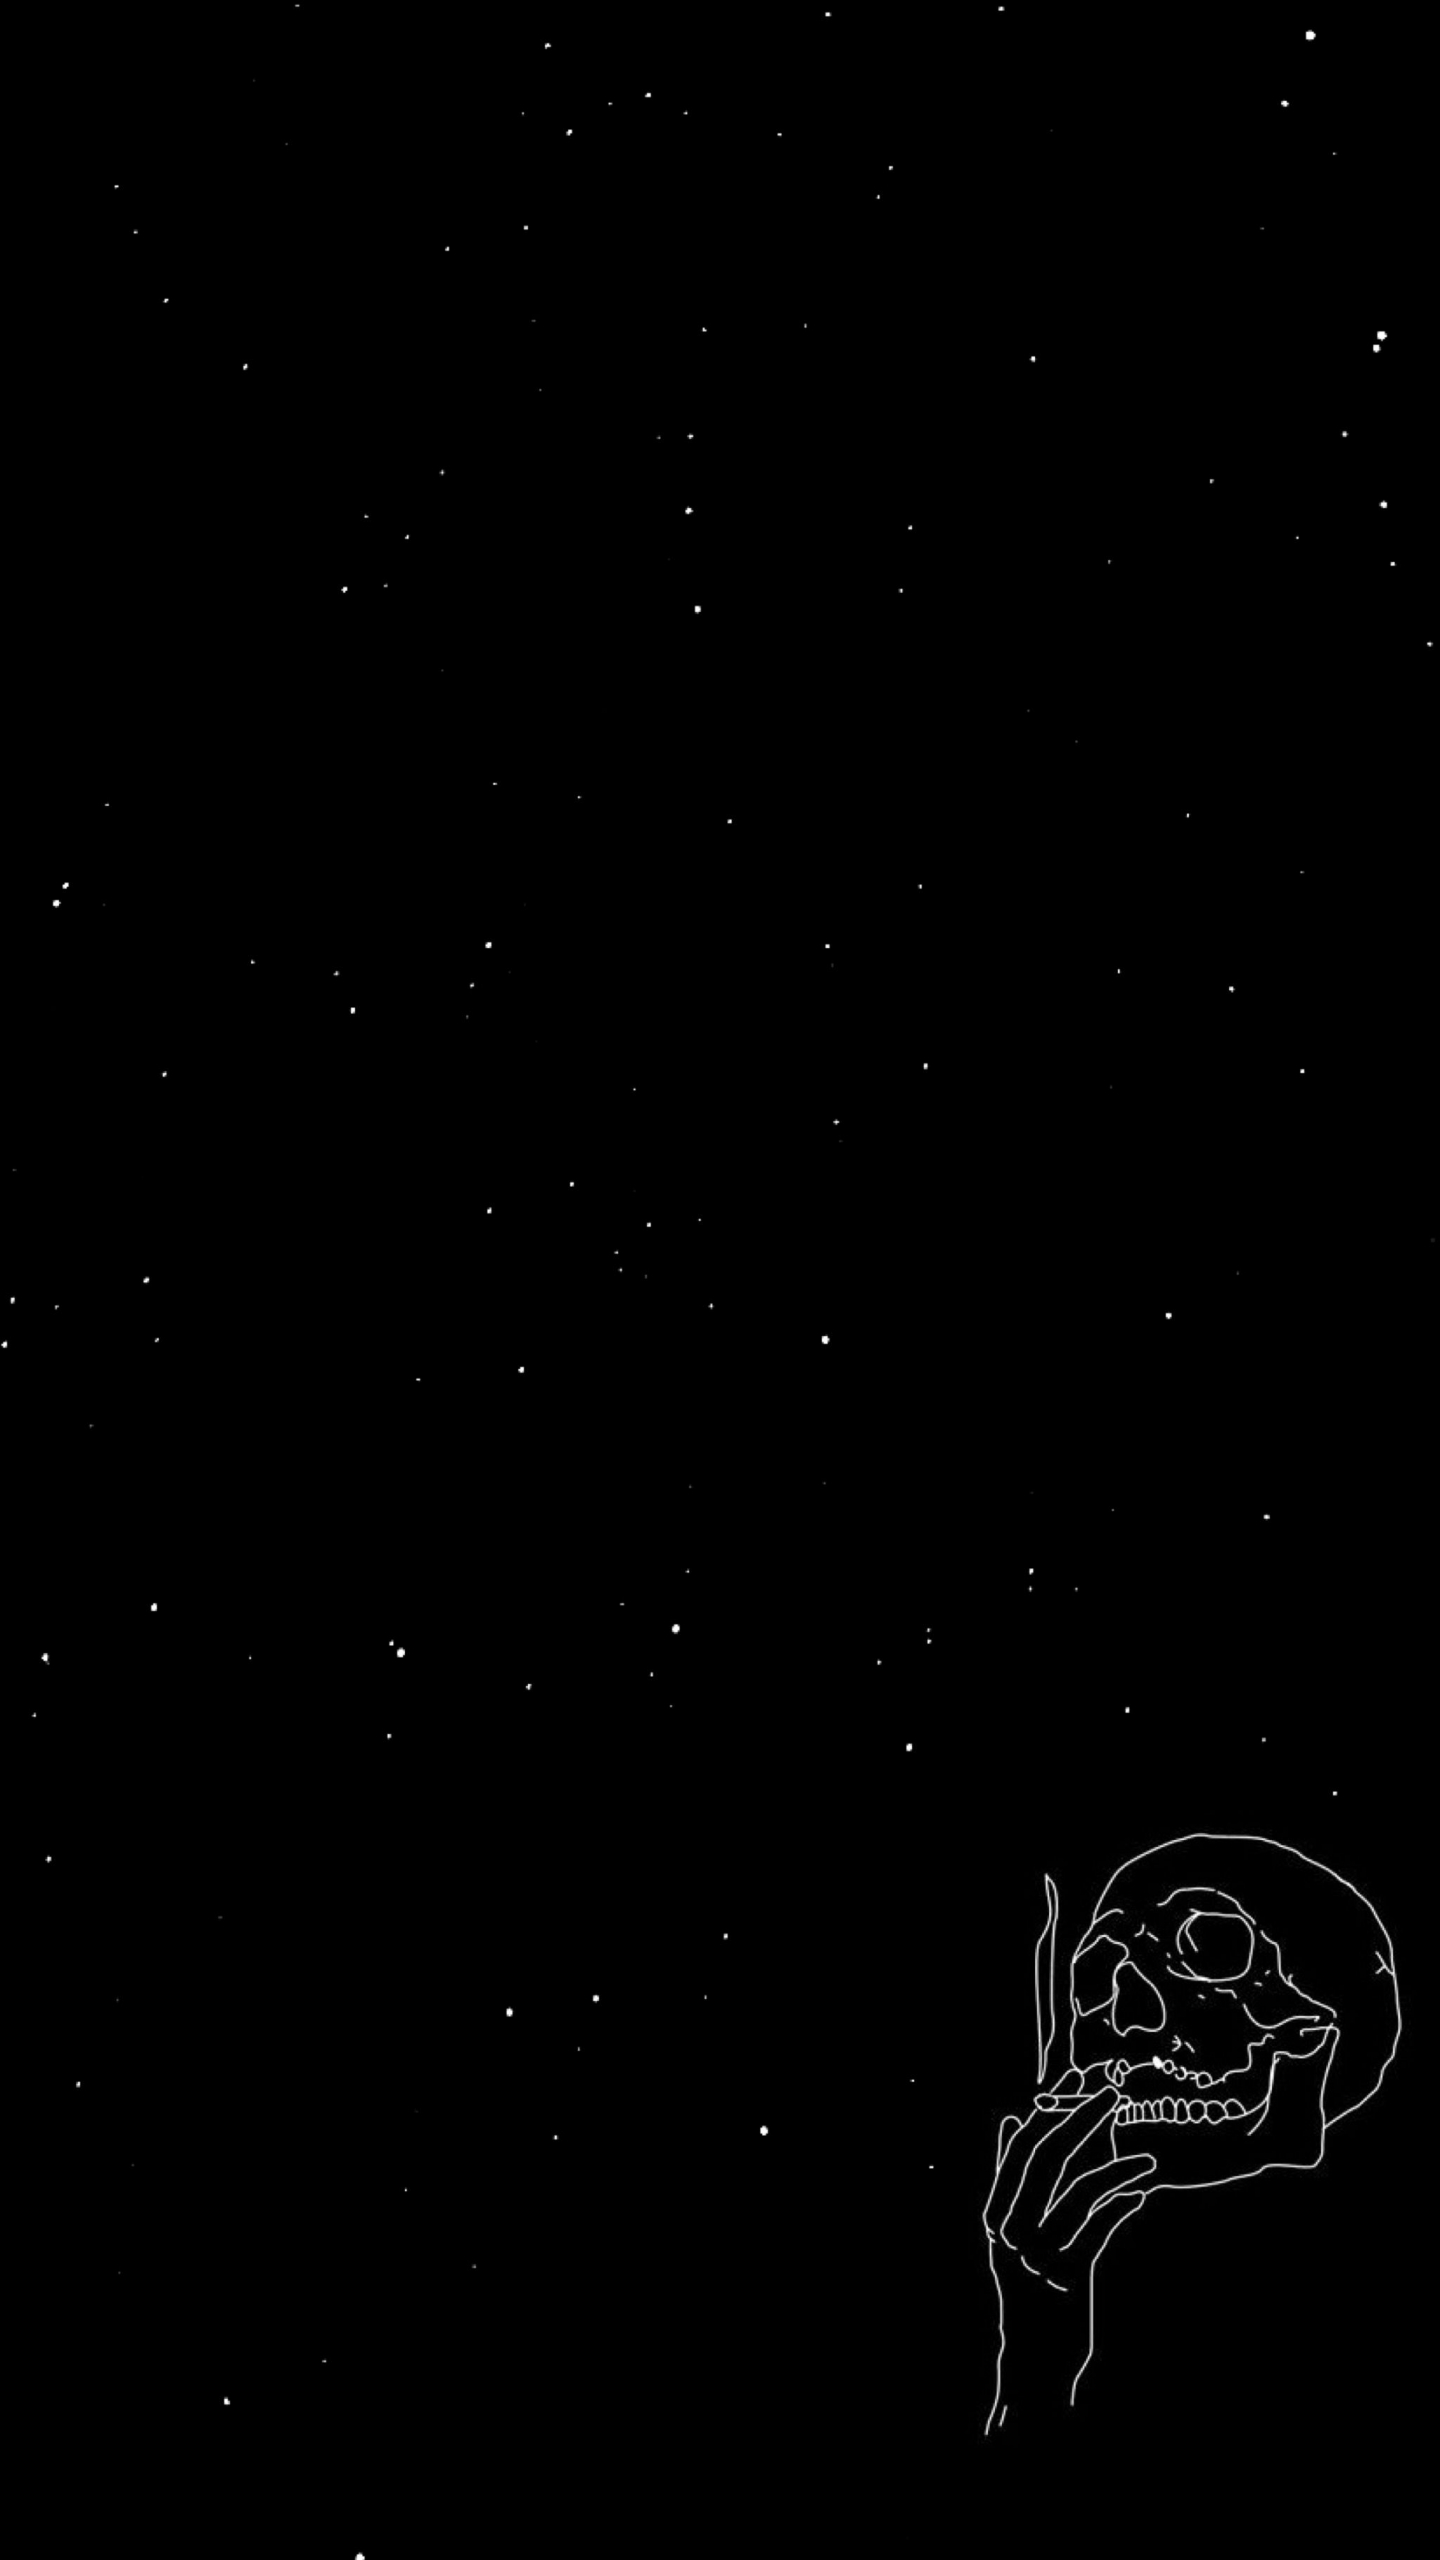 Free Download Pin By Maeein Zayed On Eno Black Wallpaper Homescreen Wallpaper 2048x3646 For Your Desktop Mobile Tablet Explore 54 Black Aesthetic Cool Wallpapers Black Aesthetic Cool Wallpapers Black